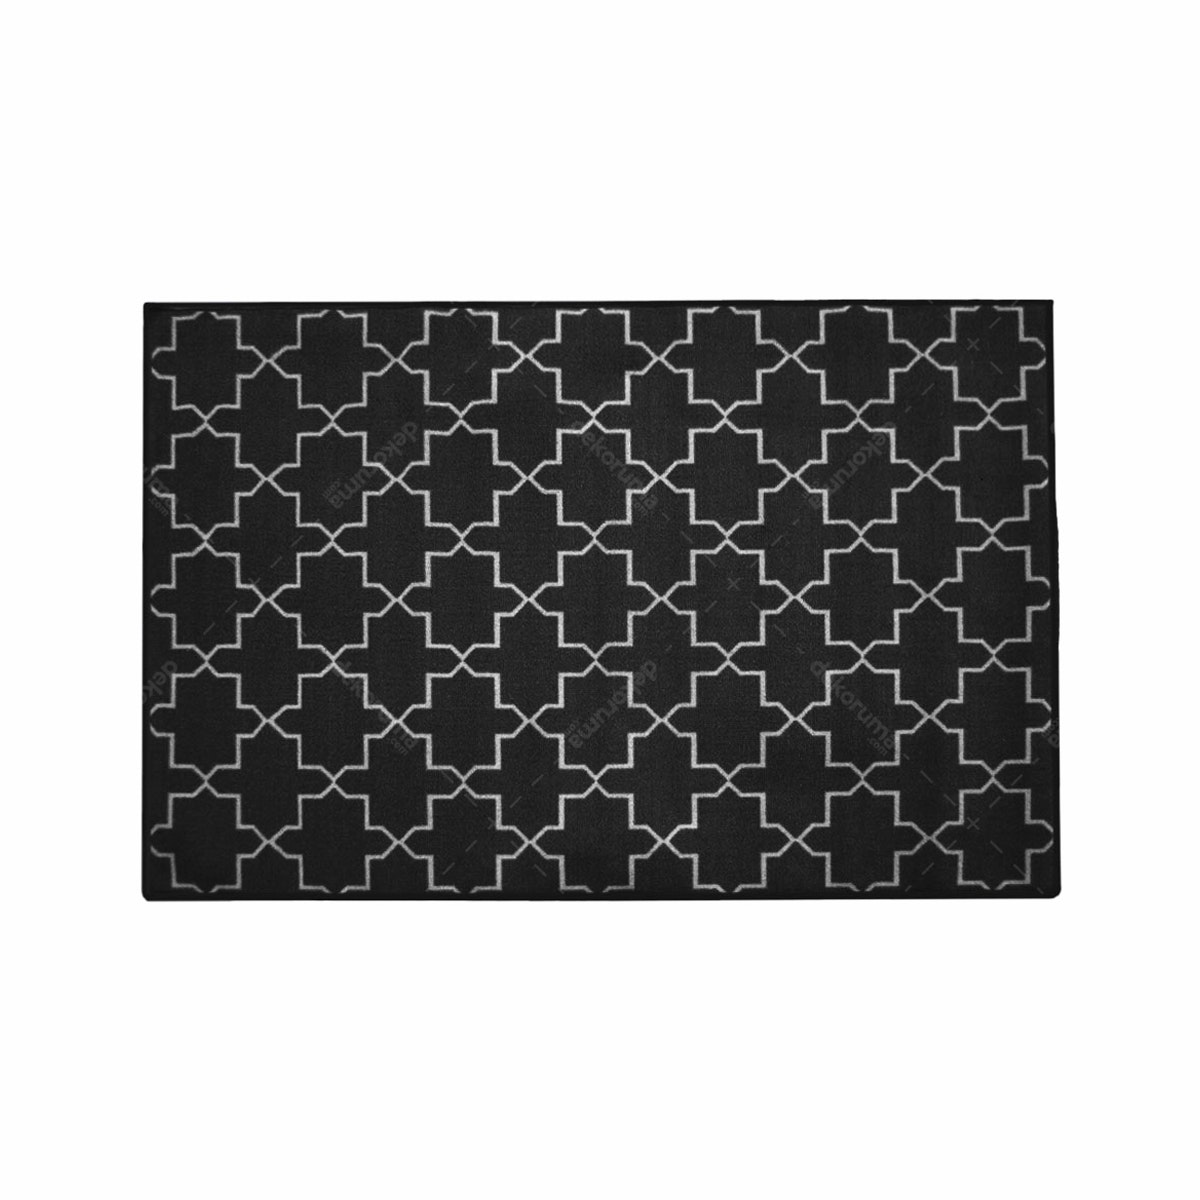 ARTSY Karpet Sweden Anti Slip 100x150 - Black